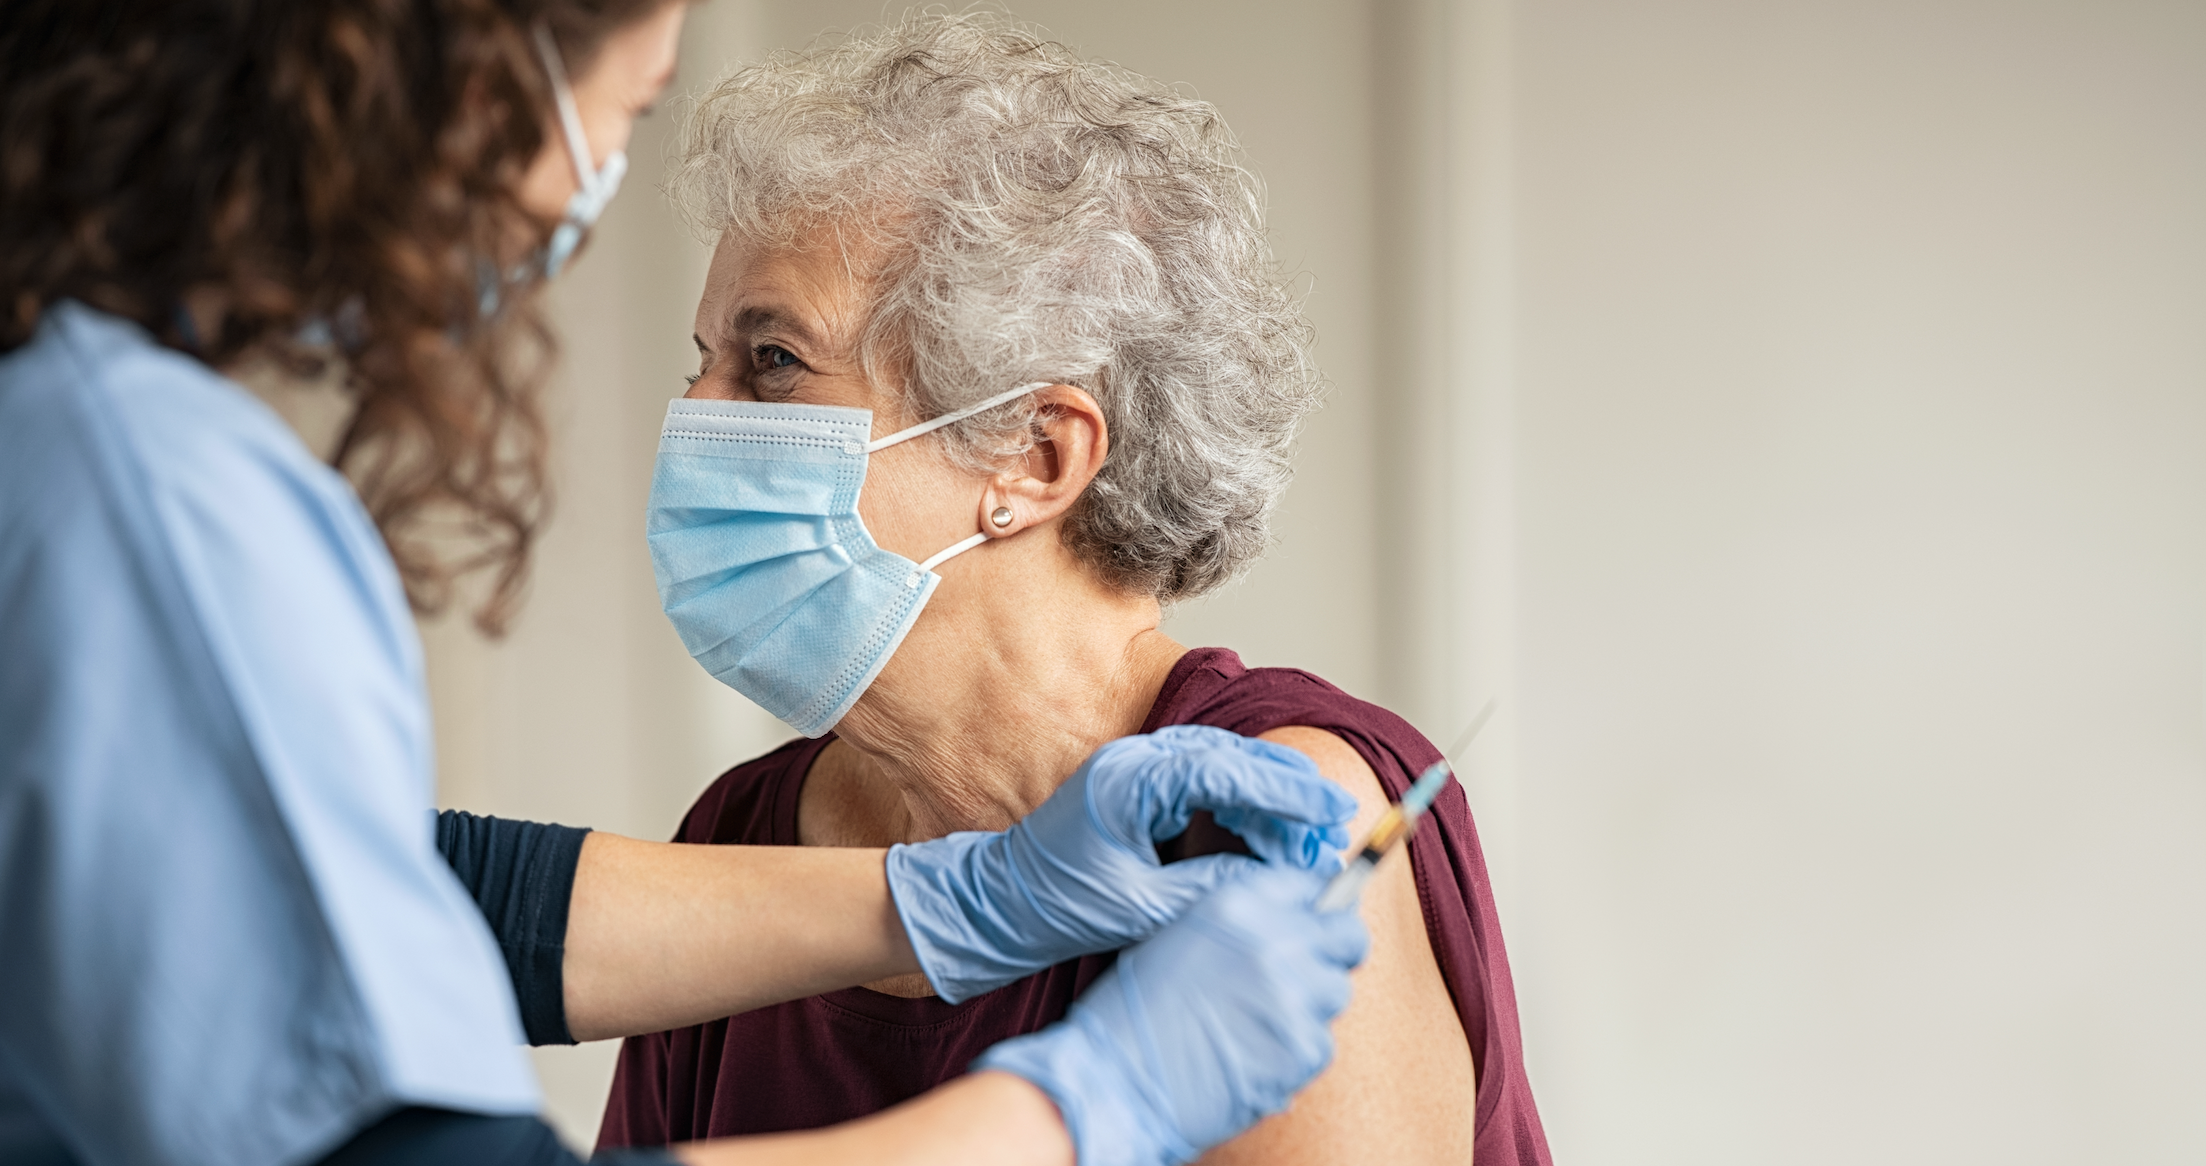 COVID-19 Update: Moderna, Pfizer Vaccines Continue Roll Out